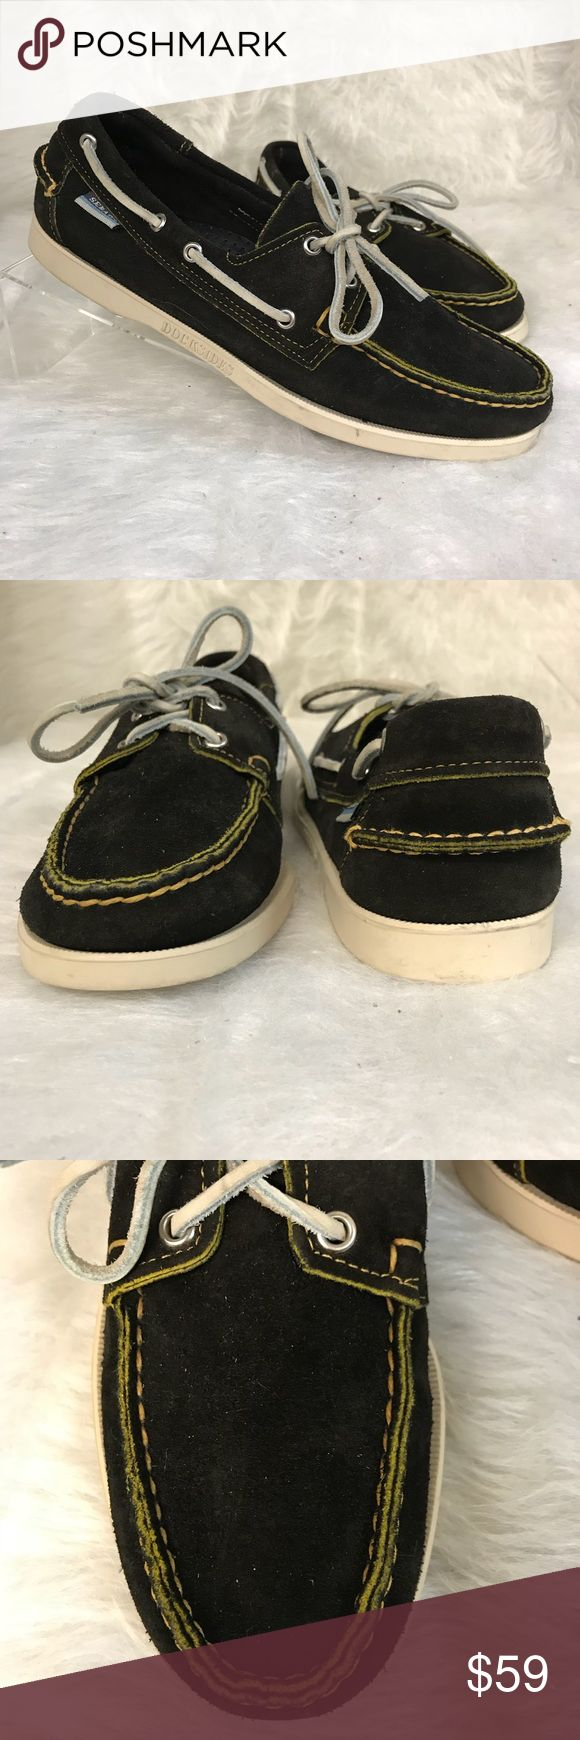 Sebago Dockside suede loafers style 72882 Dark brown suede leather shoes. New and unworn Sebago Shoes Loafers & Slip-Ons